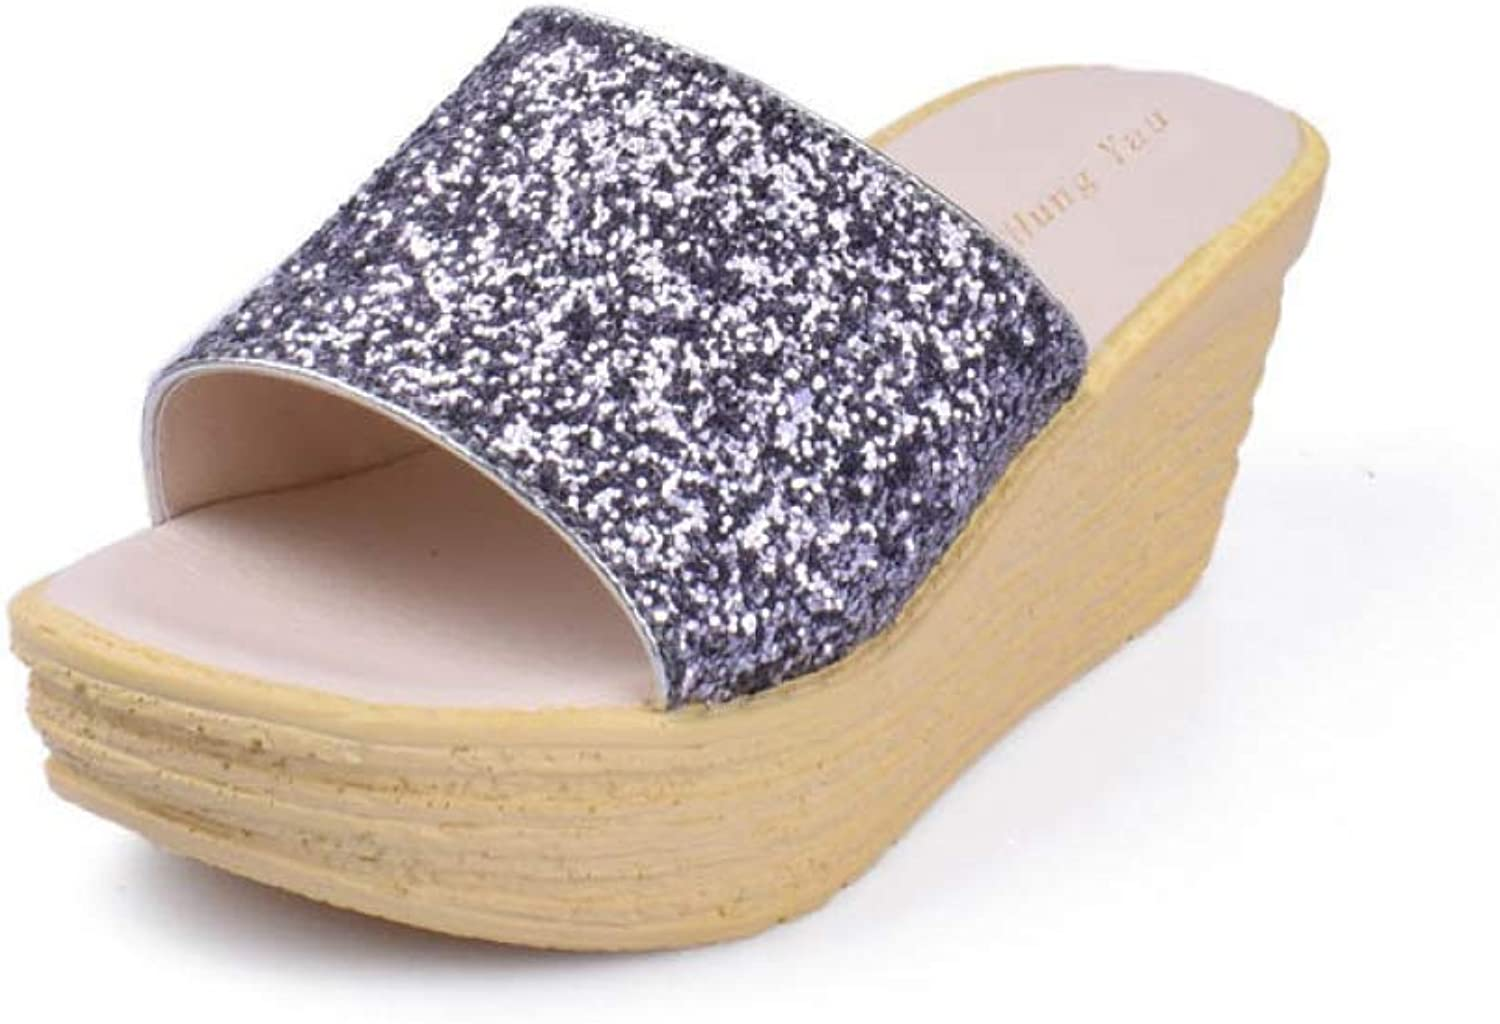 Btrada Women Platform Wedges Slippers Bring Sequins Comfortable Ladies Summer Waterproof Beach shoes